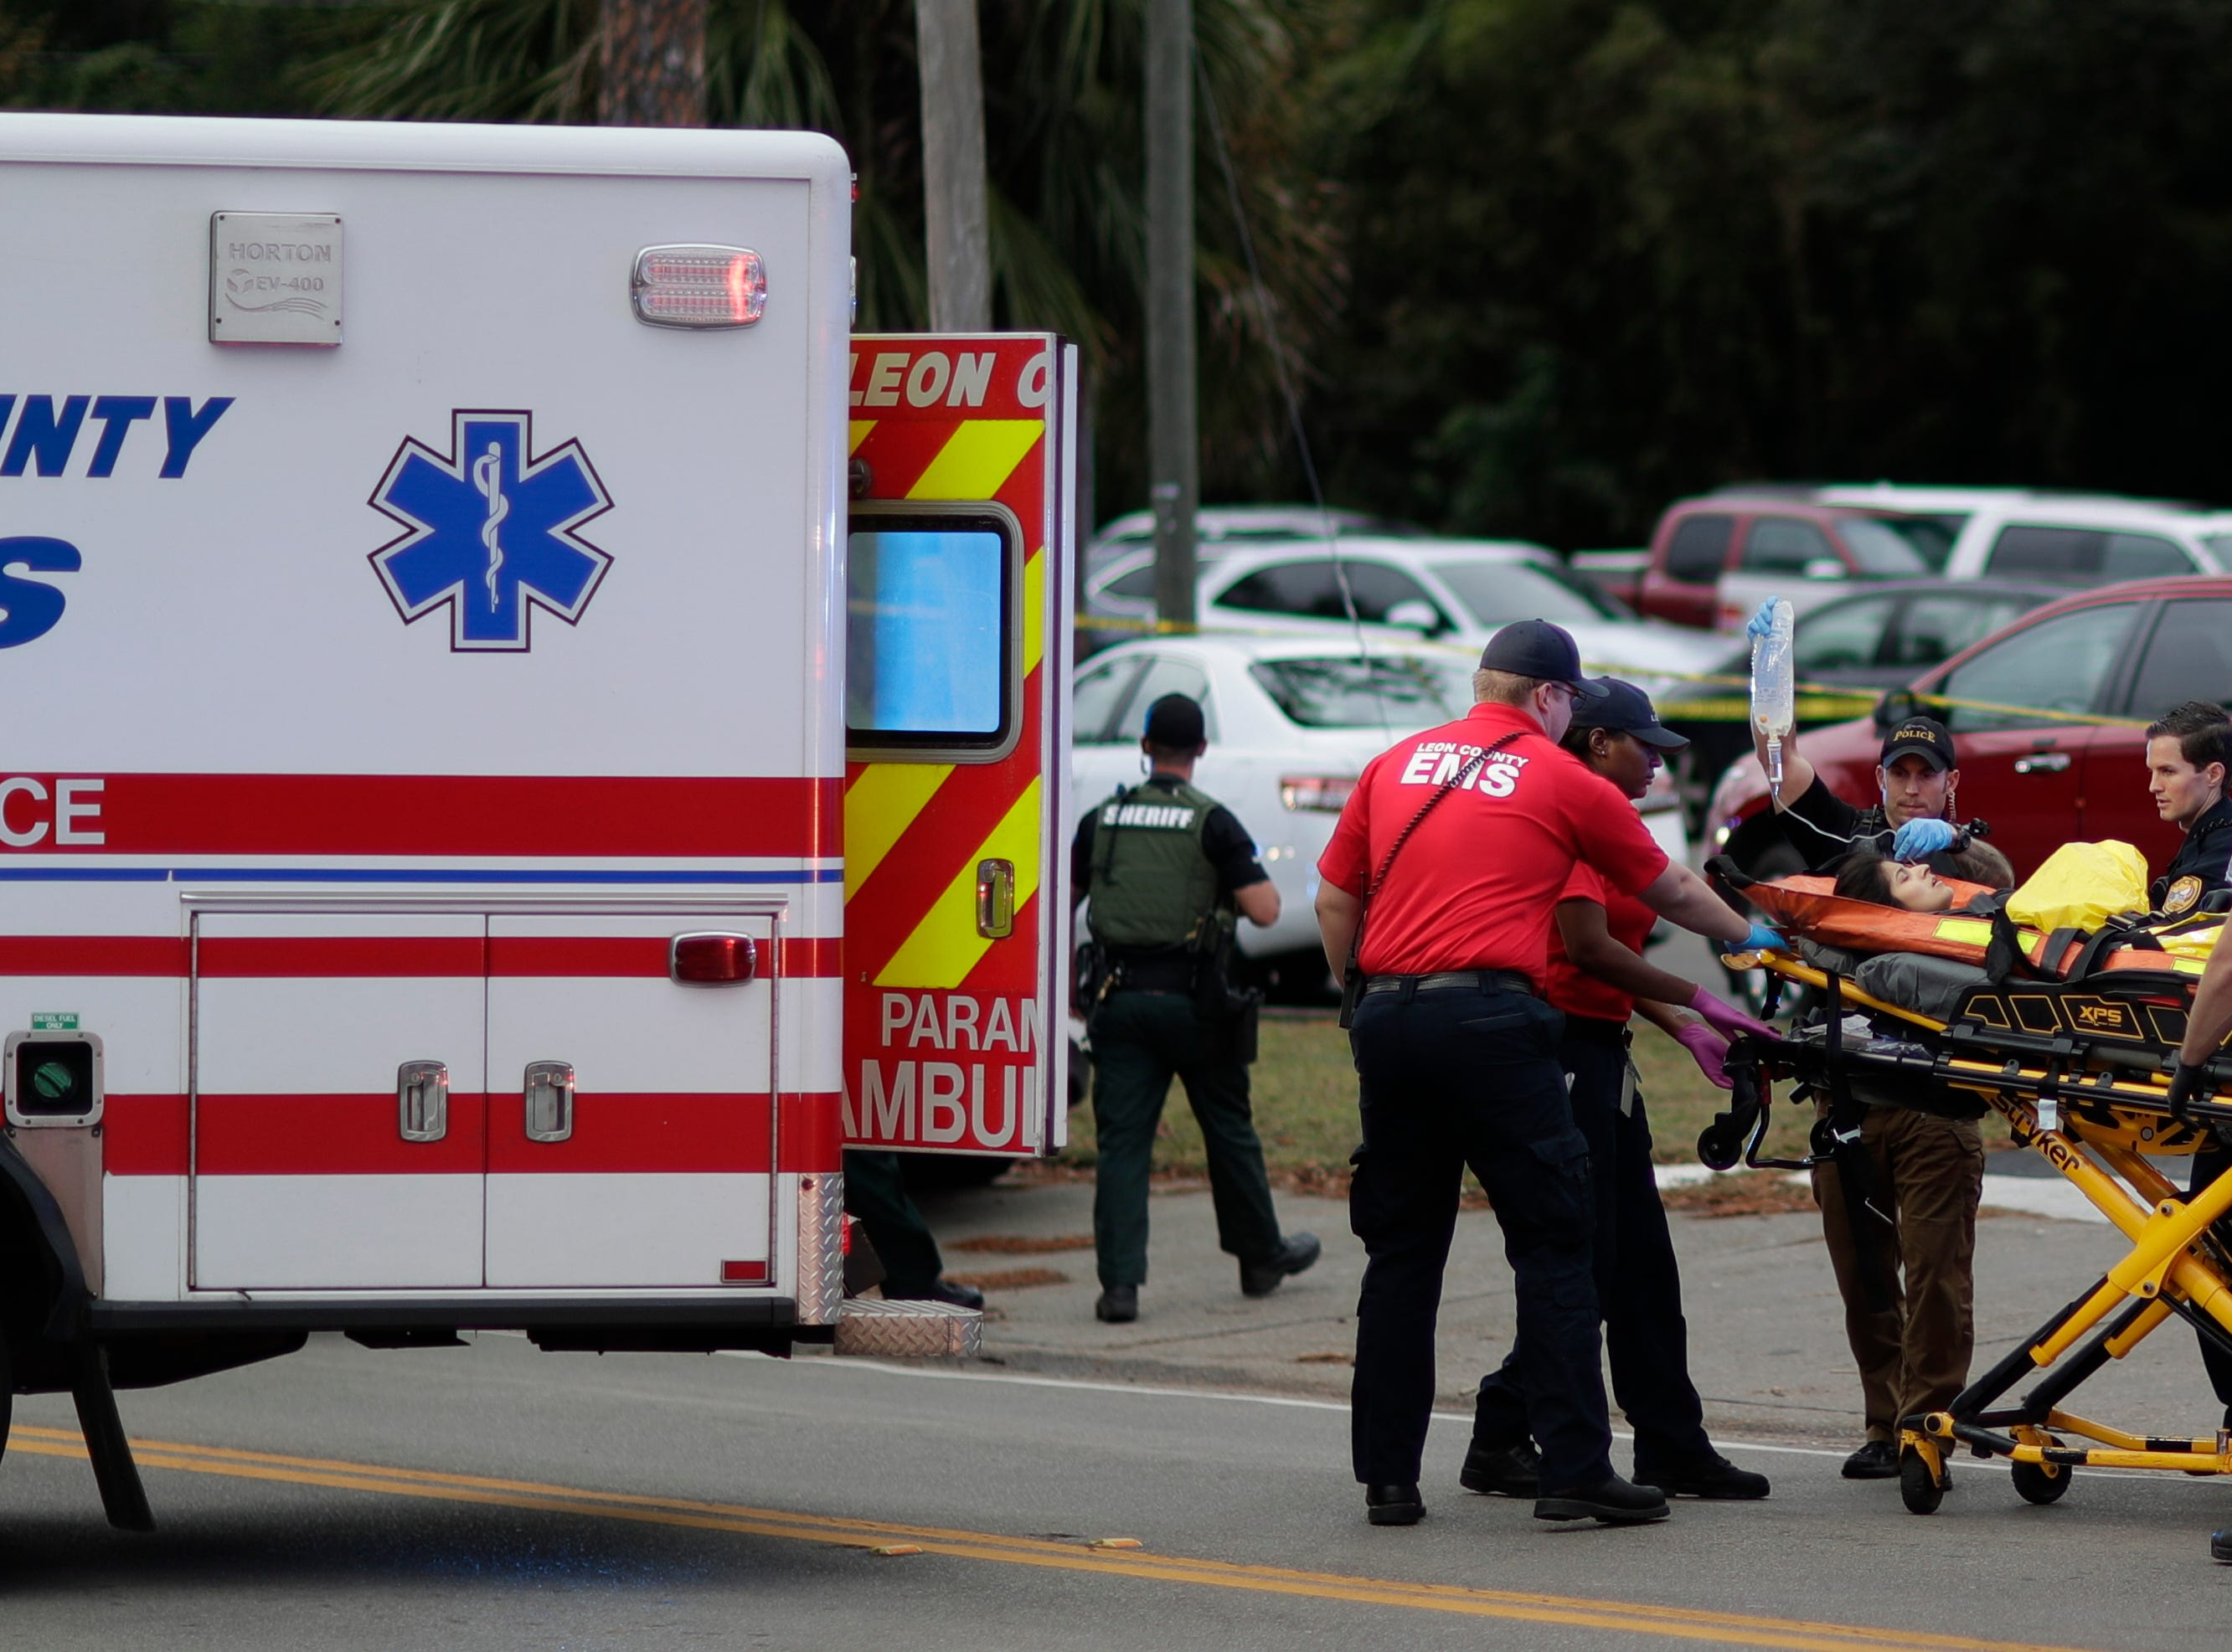 The Tallahassee Police Department is investigating a shooting at Tallahassee HotYoga near the corner of East Bradford and Thomasville roads in Midtown Tallahassee, Fla. Friday, Nov. 2, 2018.